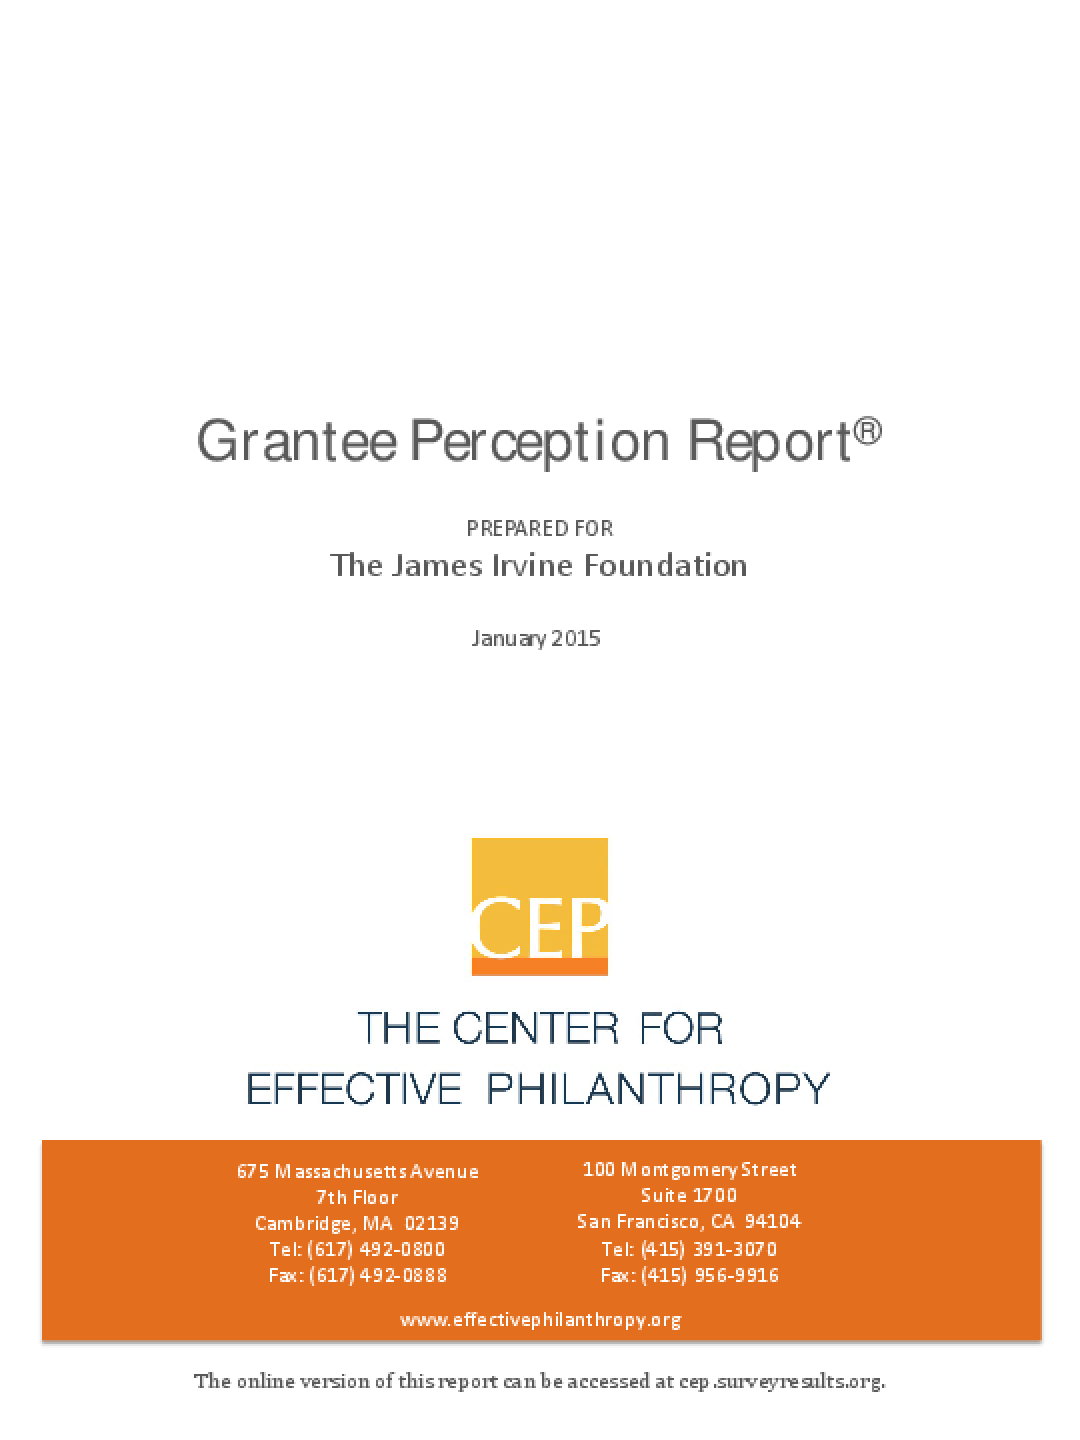 Grantee Perception Report 2015: James Irvine Foundation